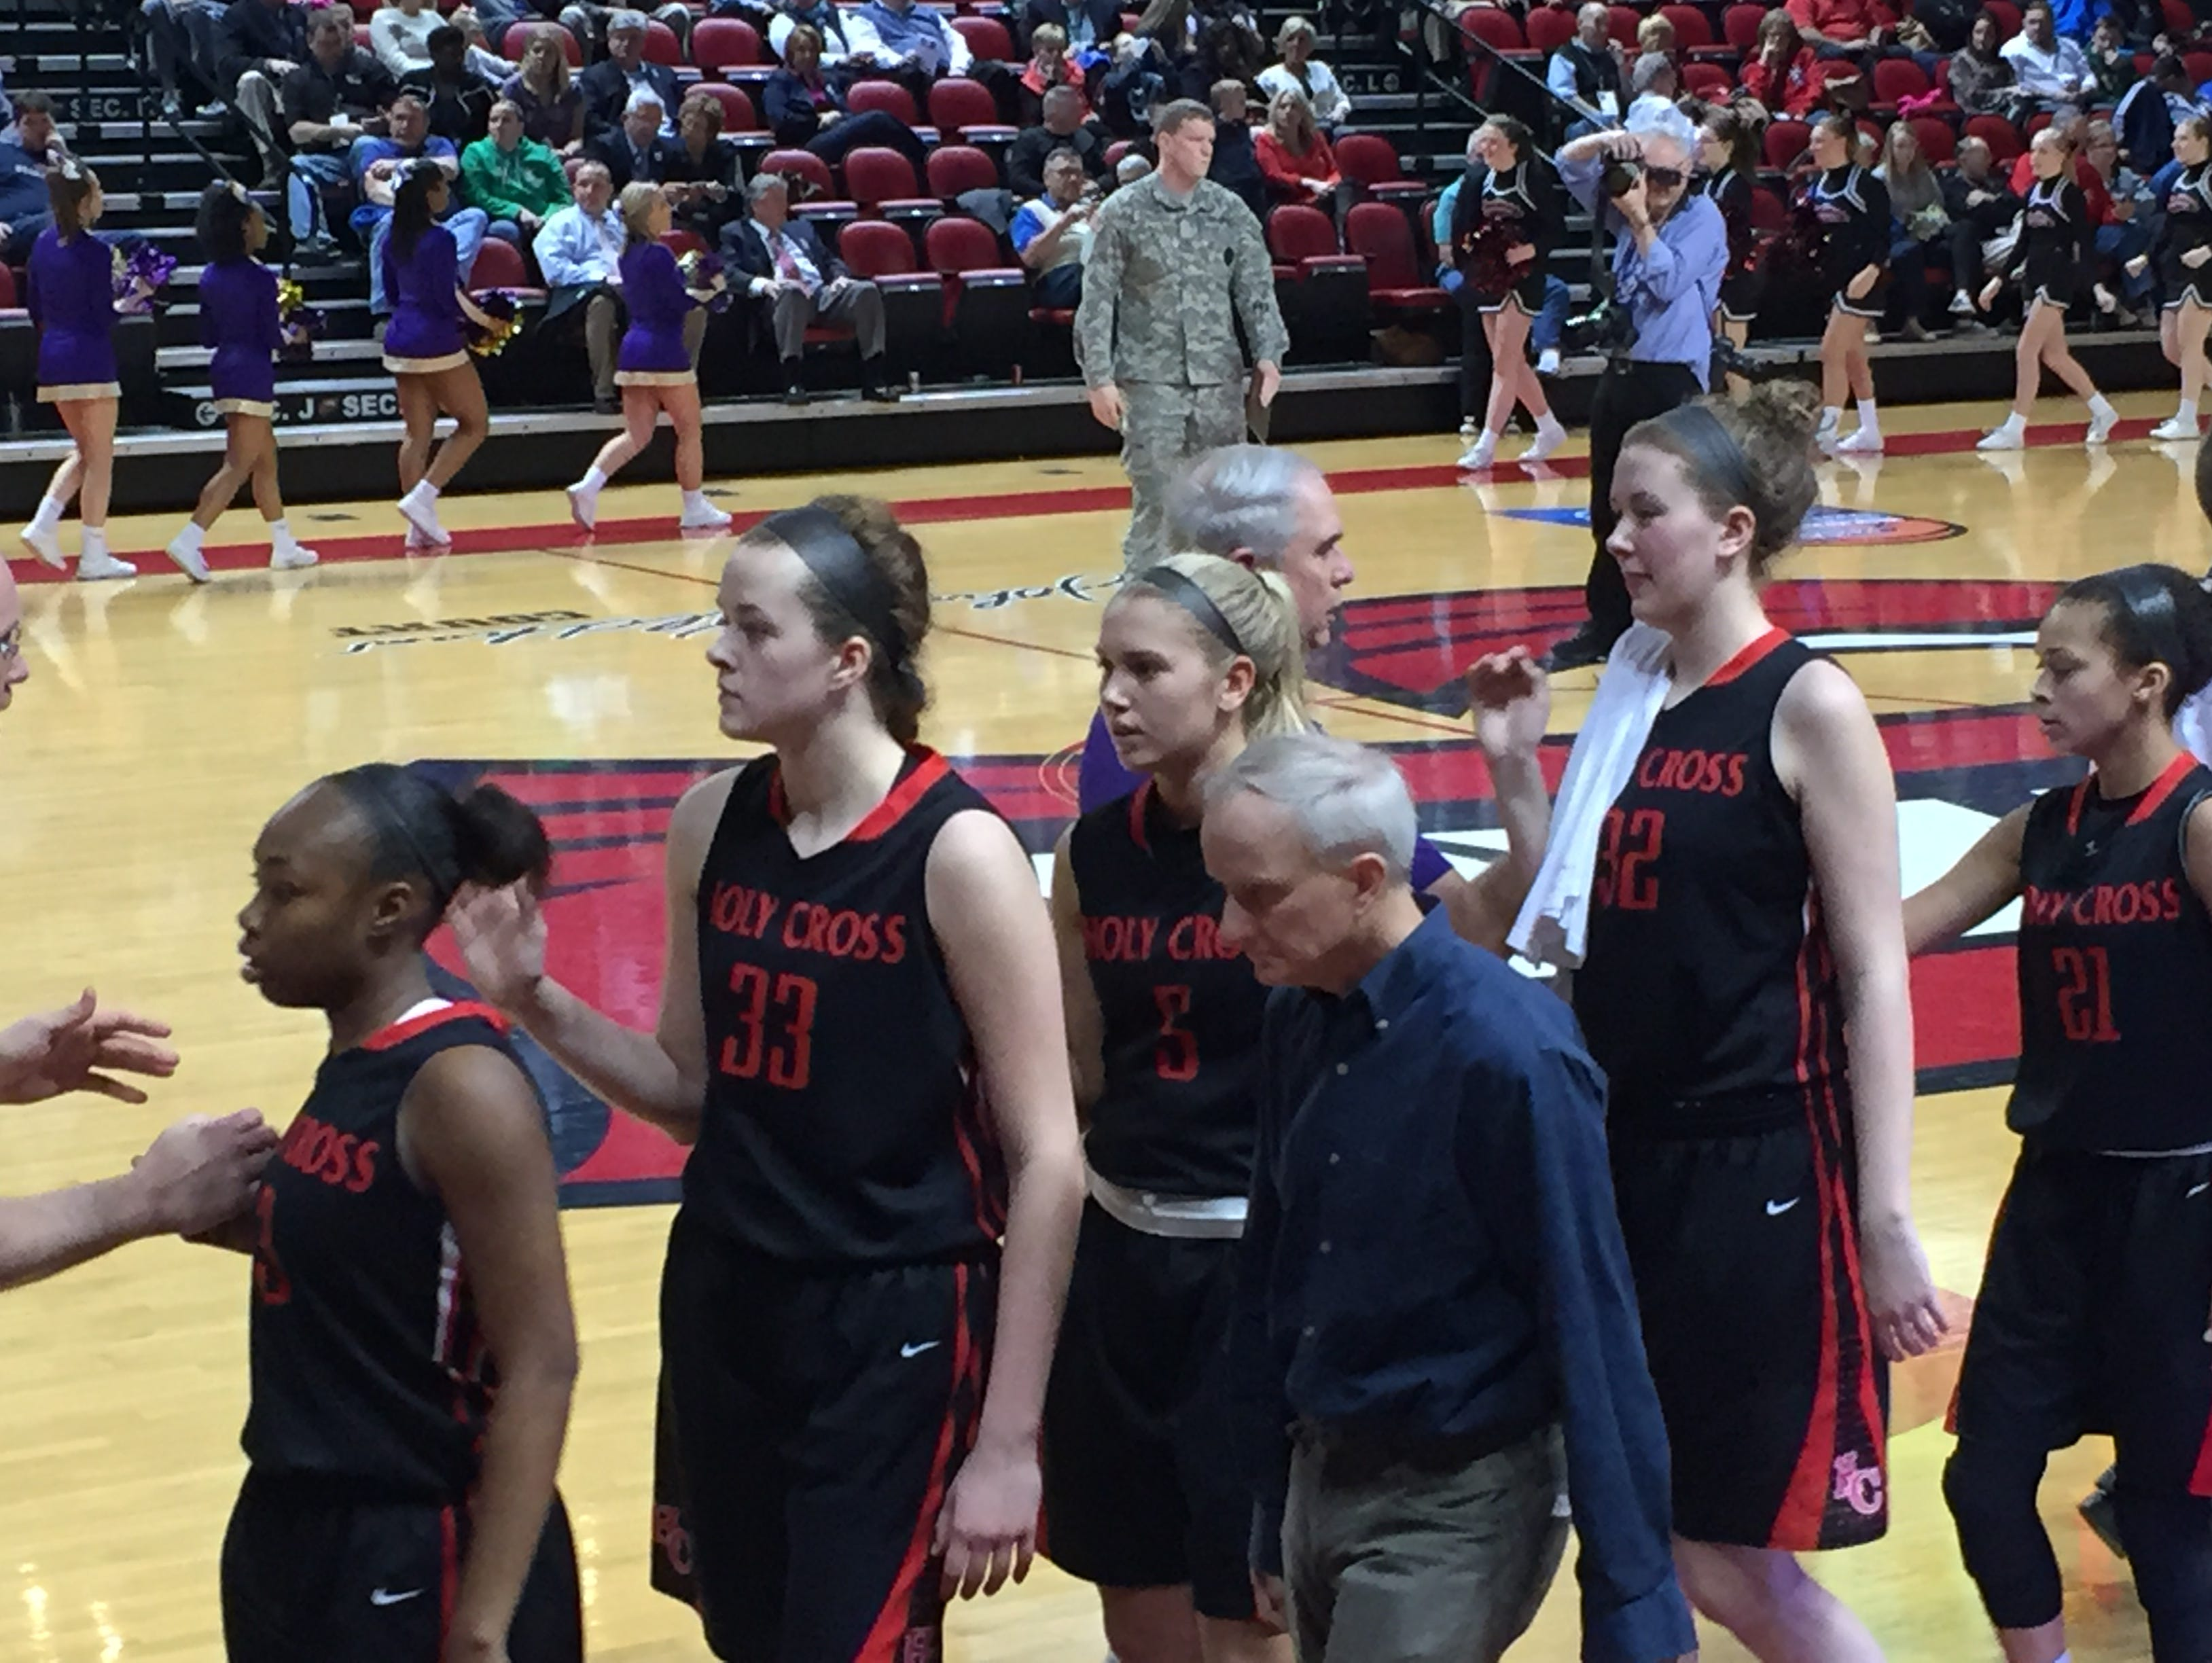 (From left) Dajah McClendon, Ally Mayhaus, Abby Hassert, Cessie Mayhaus and Aleah Tucker after Holy Cross defeated Male, 47-37, in the state semifinals on Saturday.